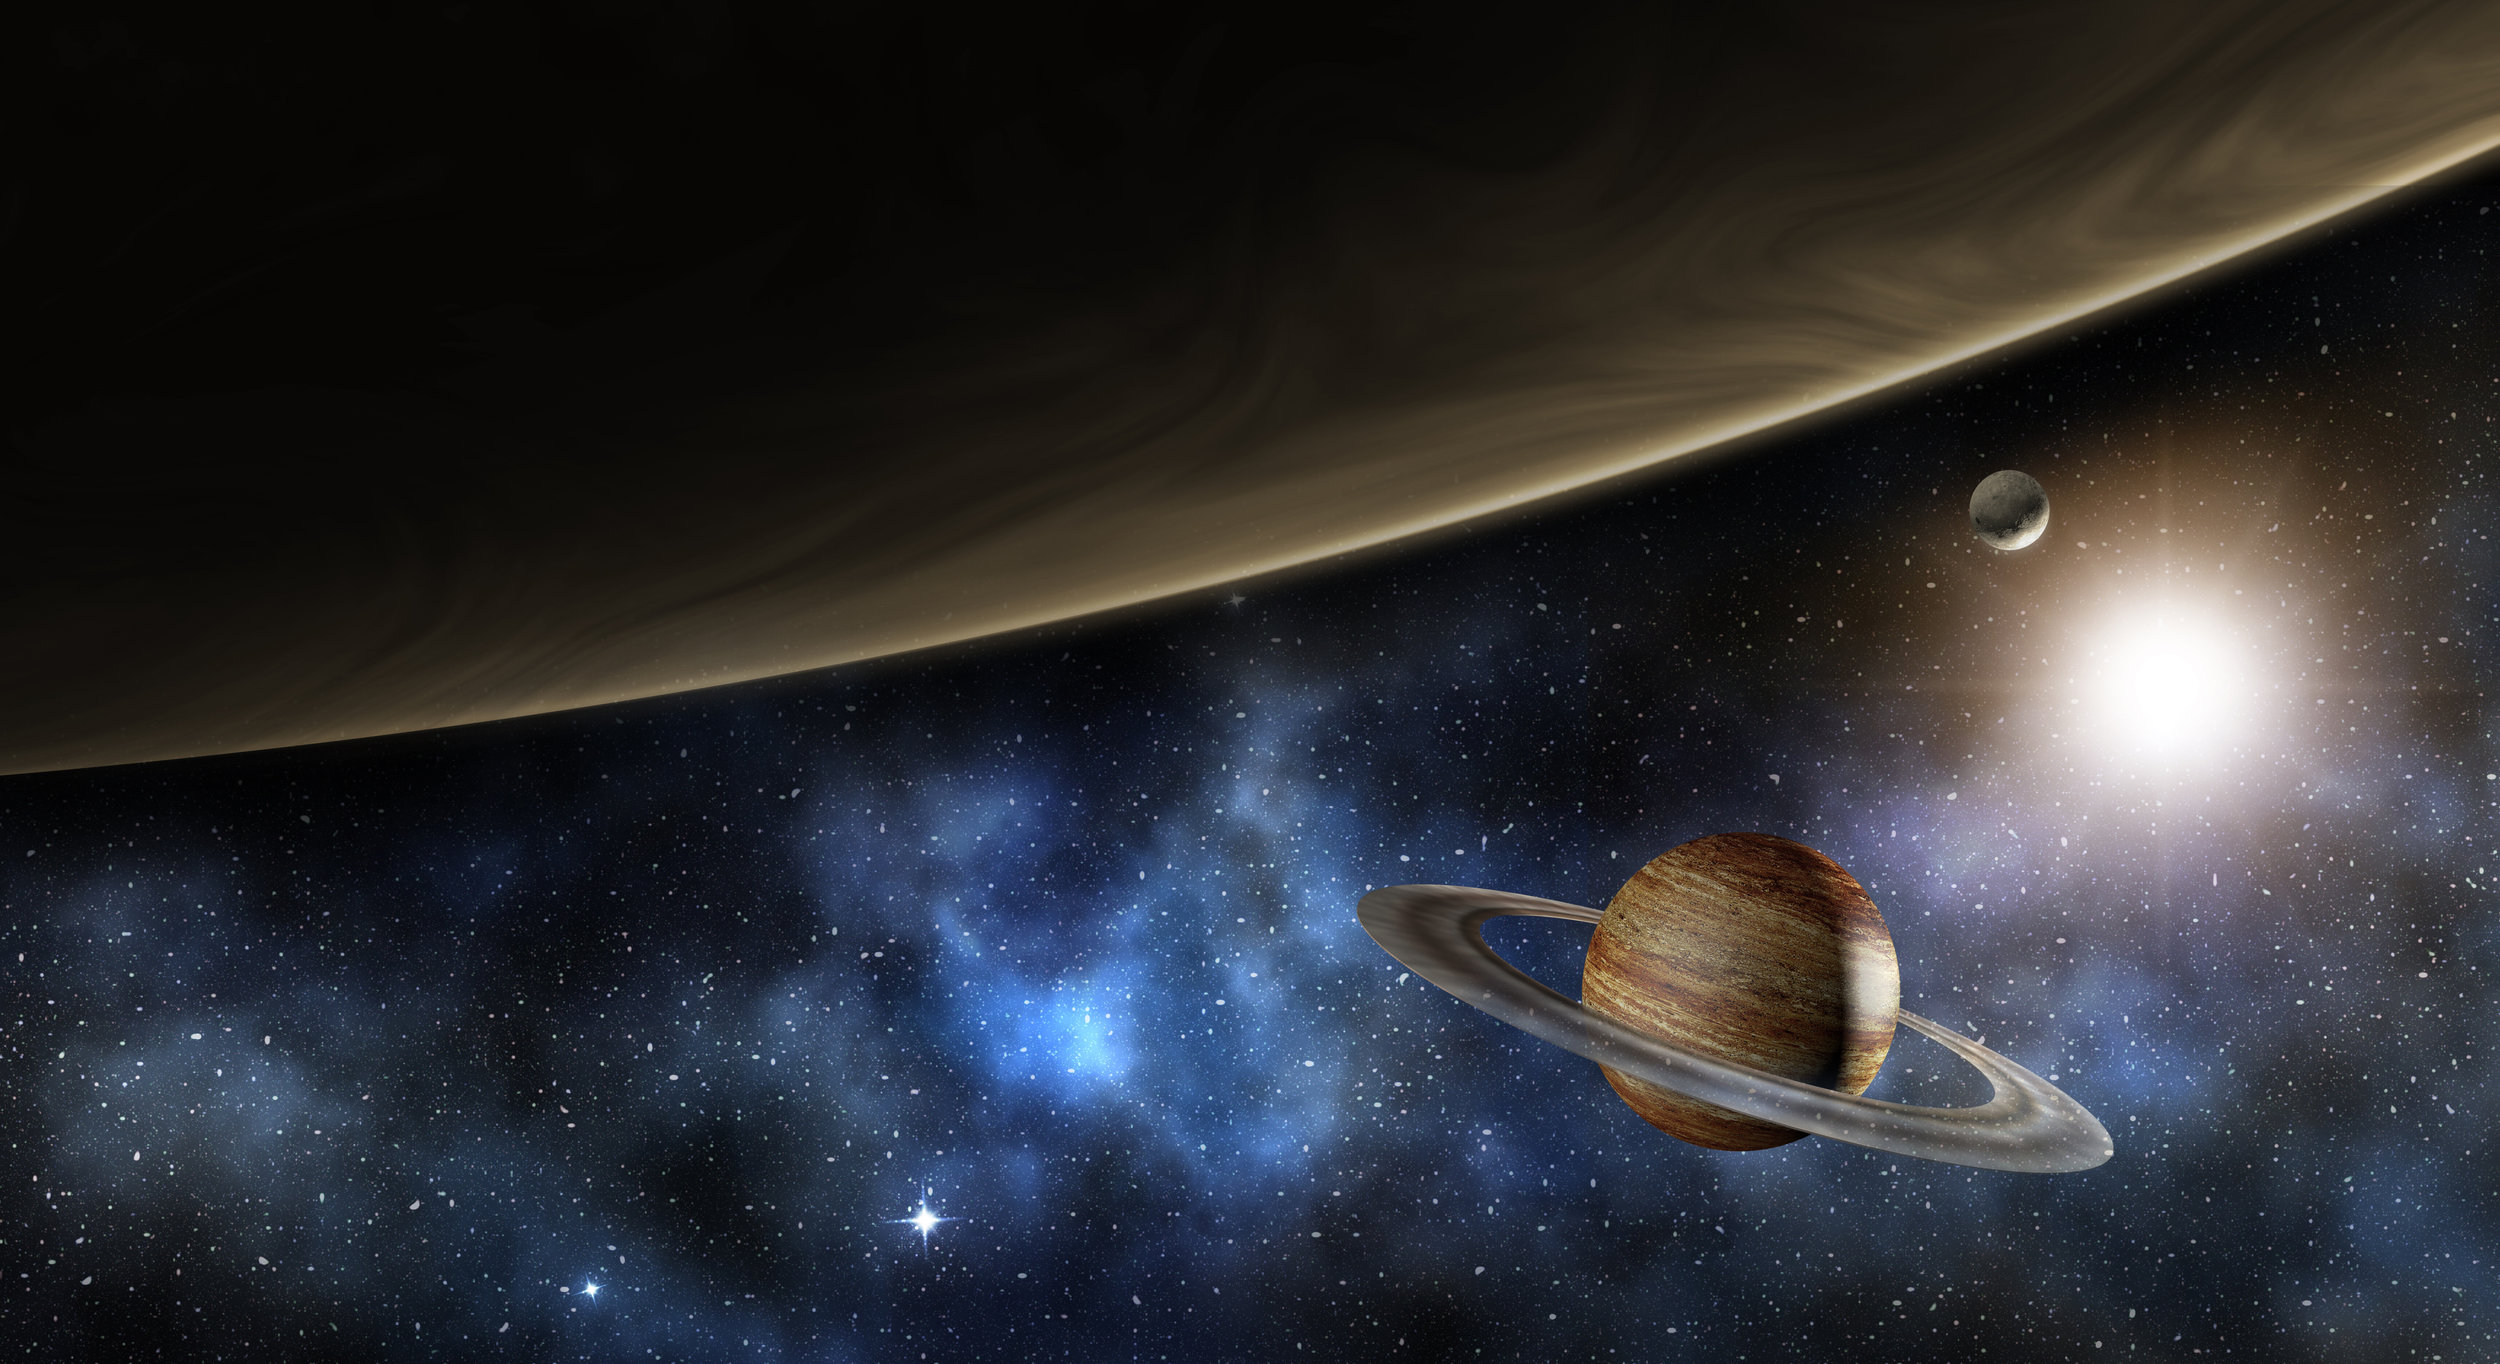 jupiter-saturn-and-the-milky-way-3d-illustration-PBB6HM3 (1).jpg